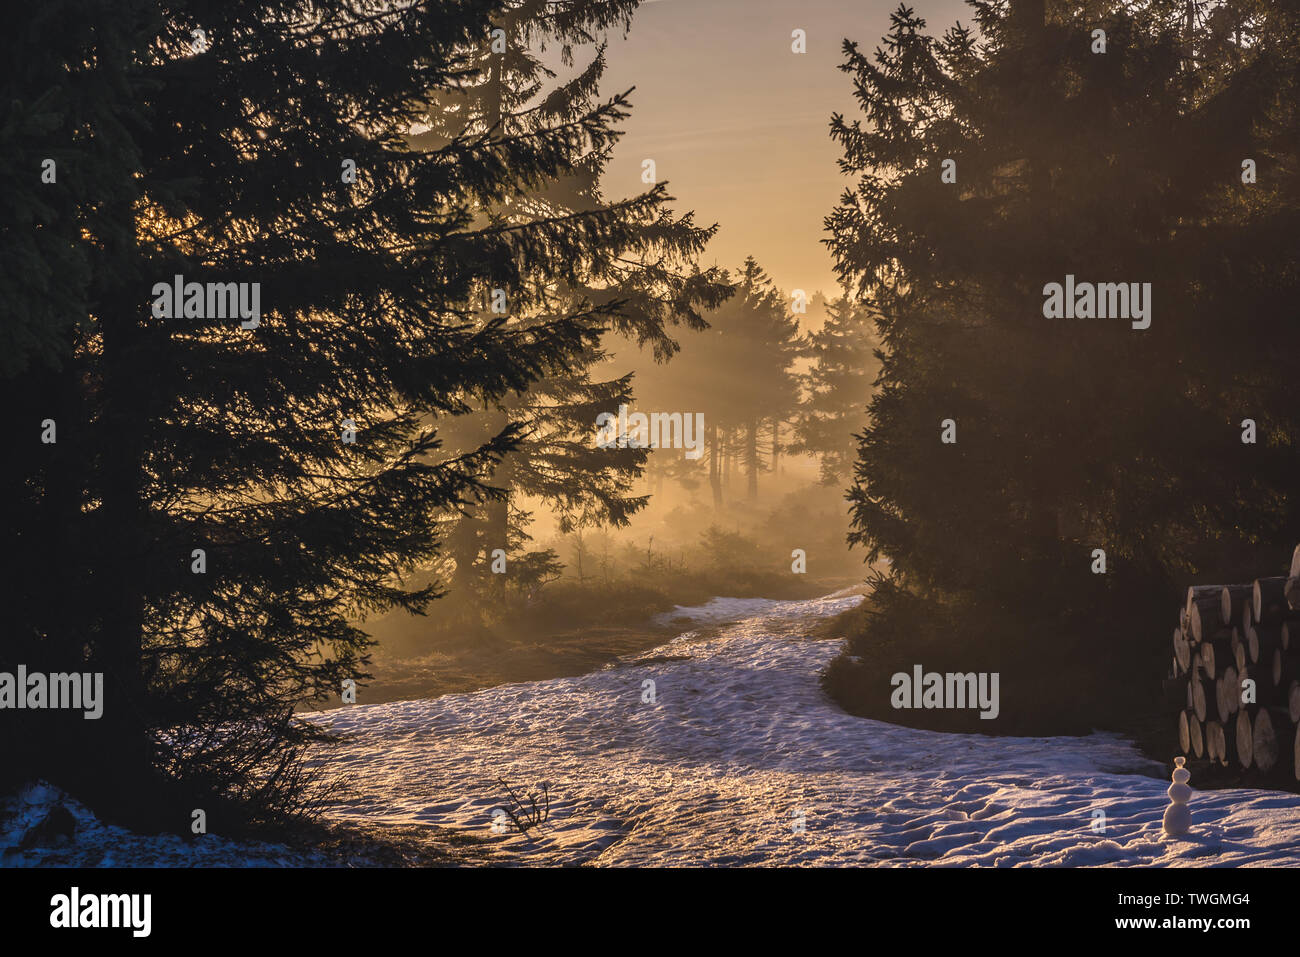 Trail on Wielka Sowa (Great Owl) mount in Landscape Park of Gory Sowie (Owl Mountains range) in Central Sudetes, Poland - Stock Image